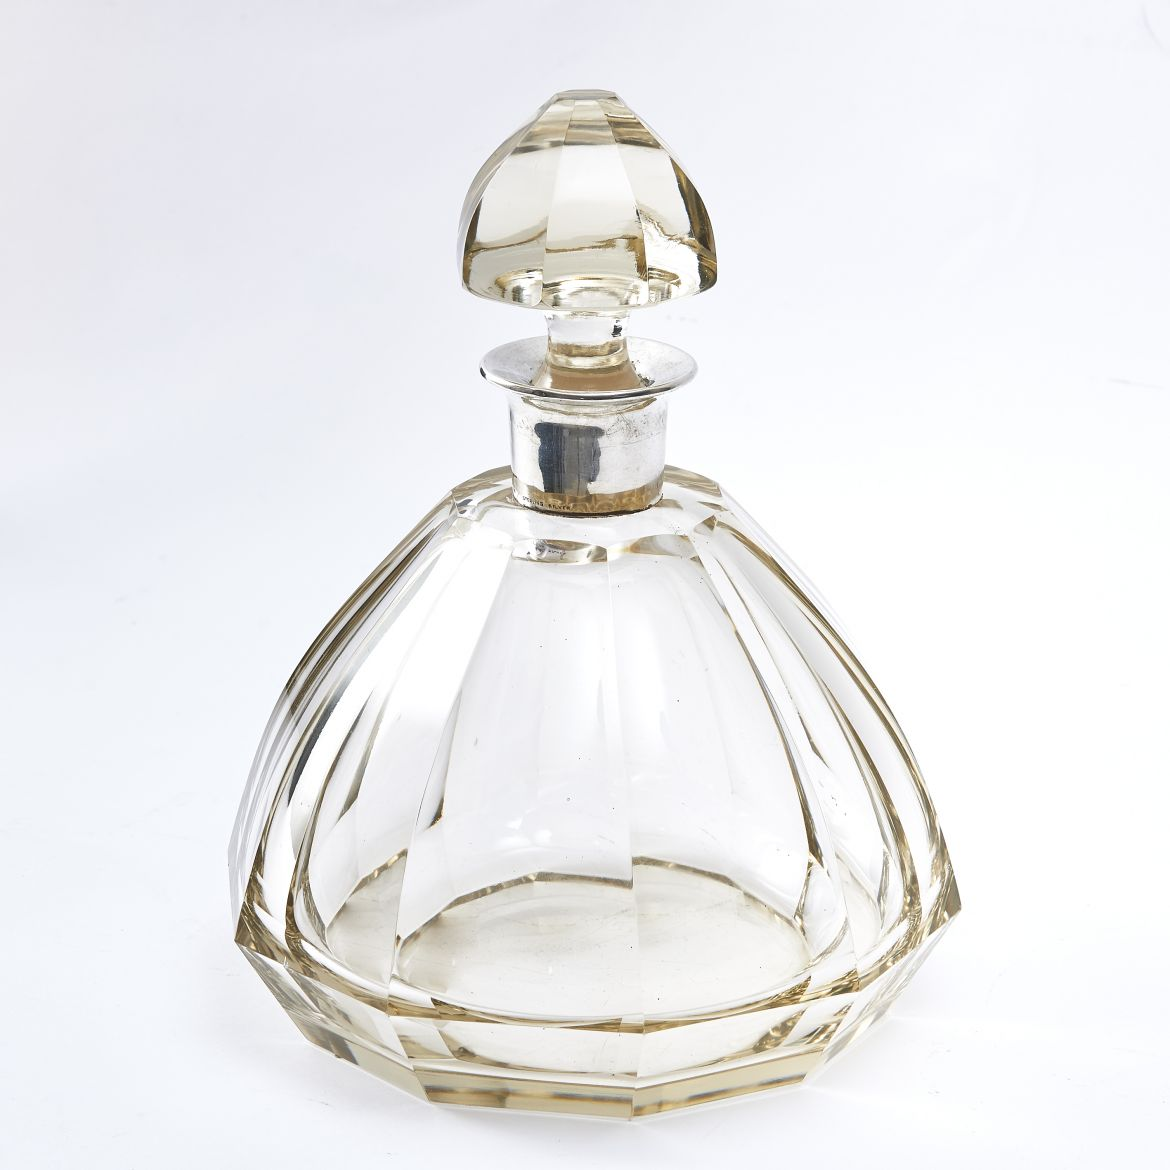 American Art Deco Silver Collared Decanter